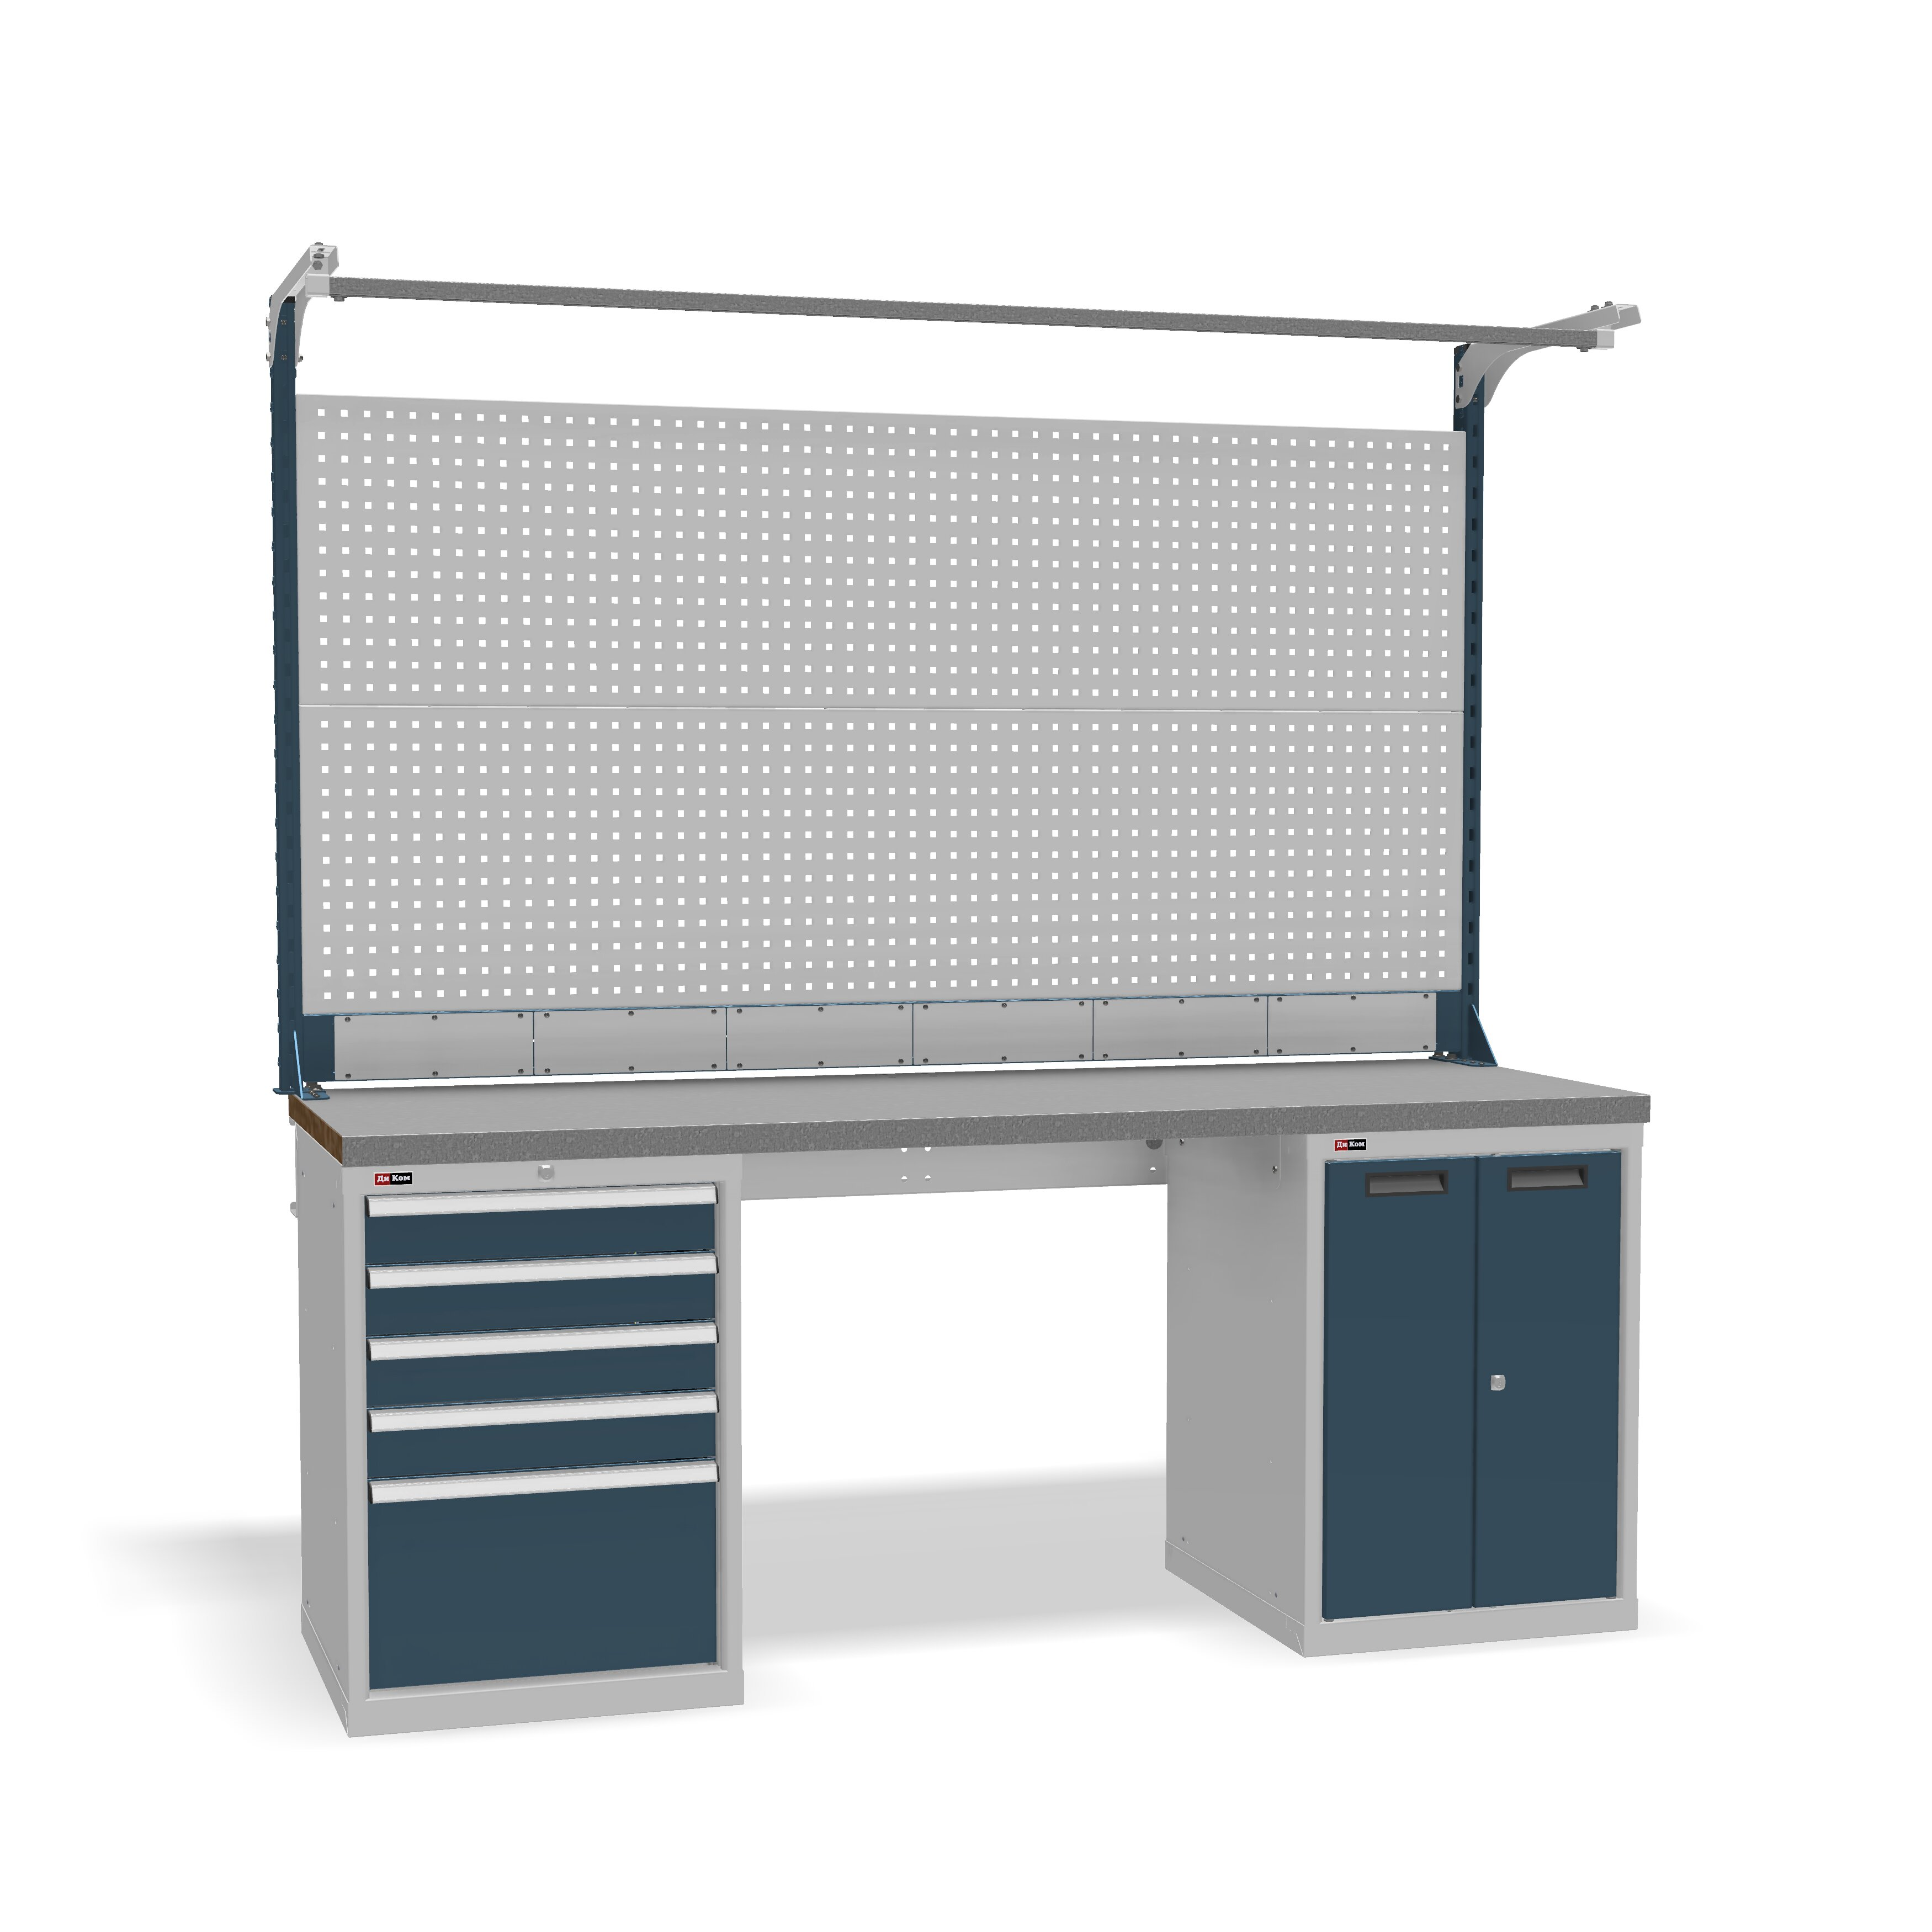 DiKom VS-200-07 Workbench + DiKom Perforated Panel VS-200-E6